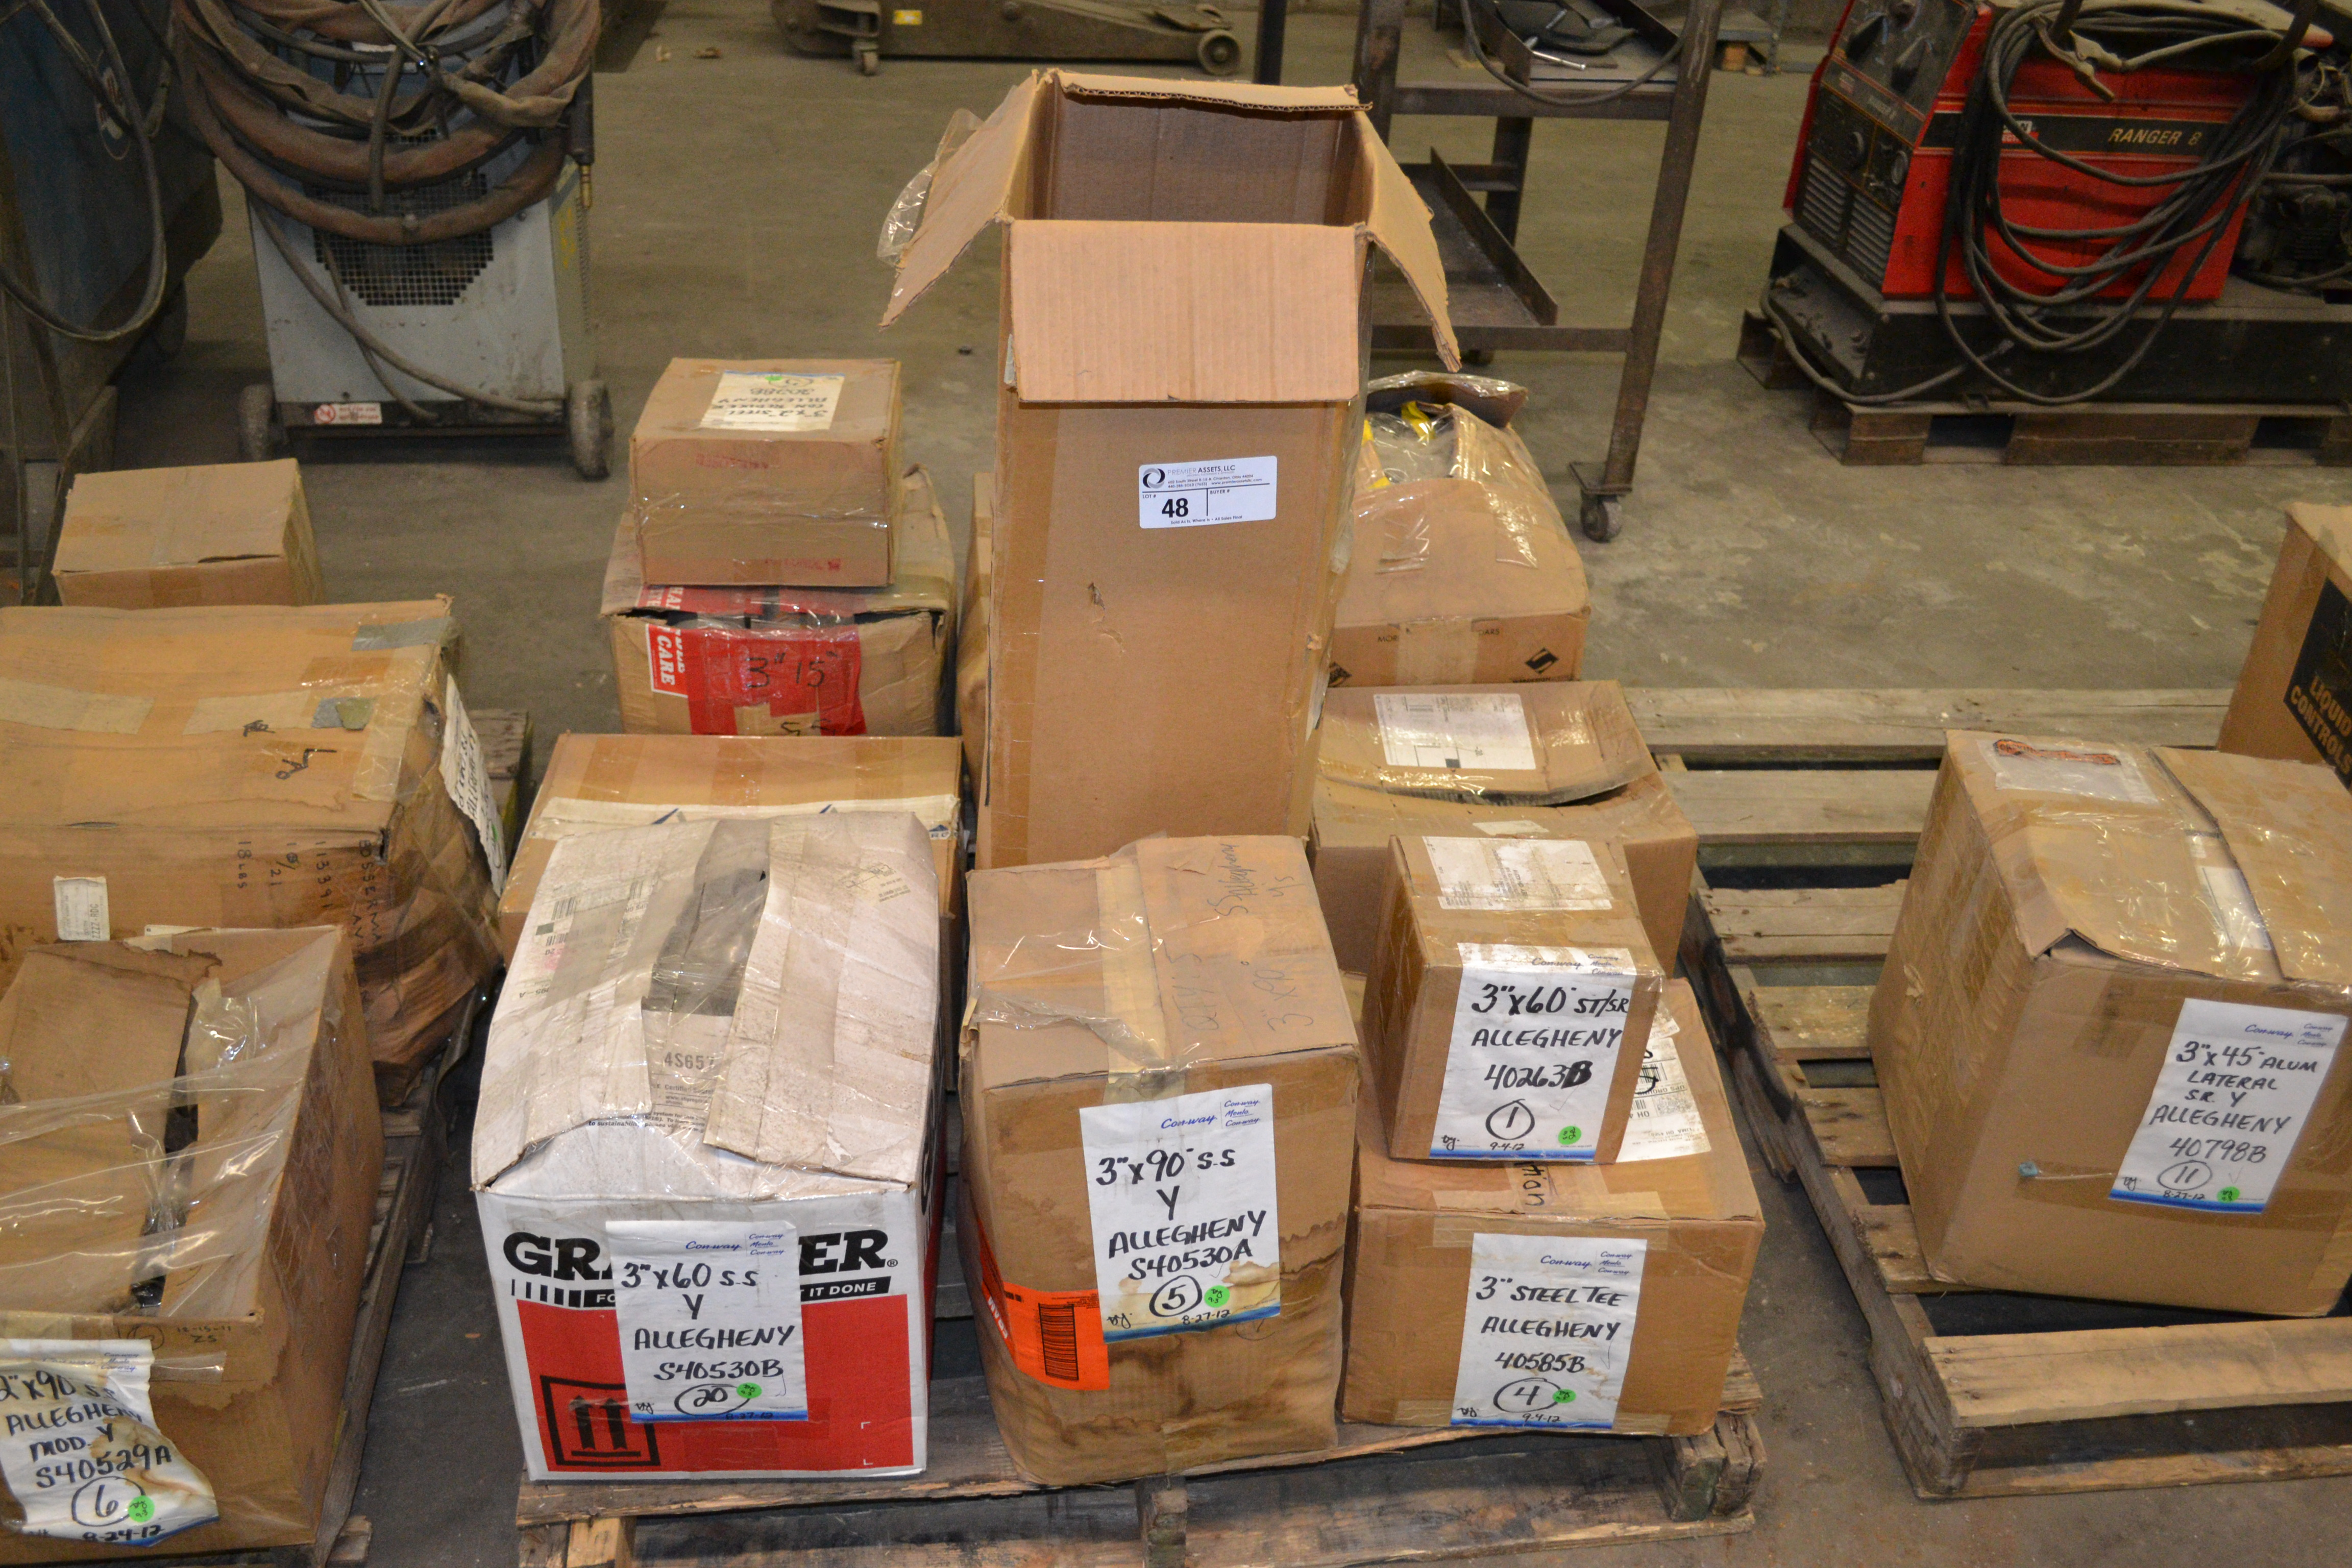 """Lot 48 - skid with boxes of Allegheny SS/SR & Steel 3"""" fittings, degrees - 60, 90, Tees, Cross,15, 30 &"""